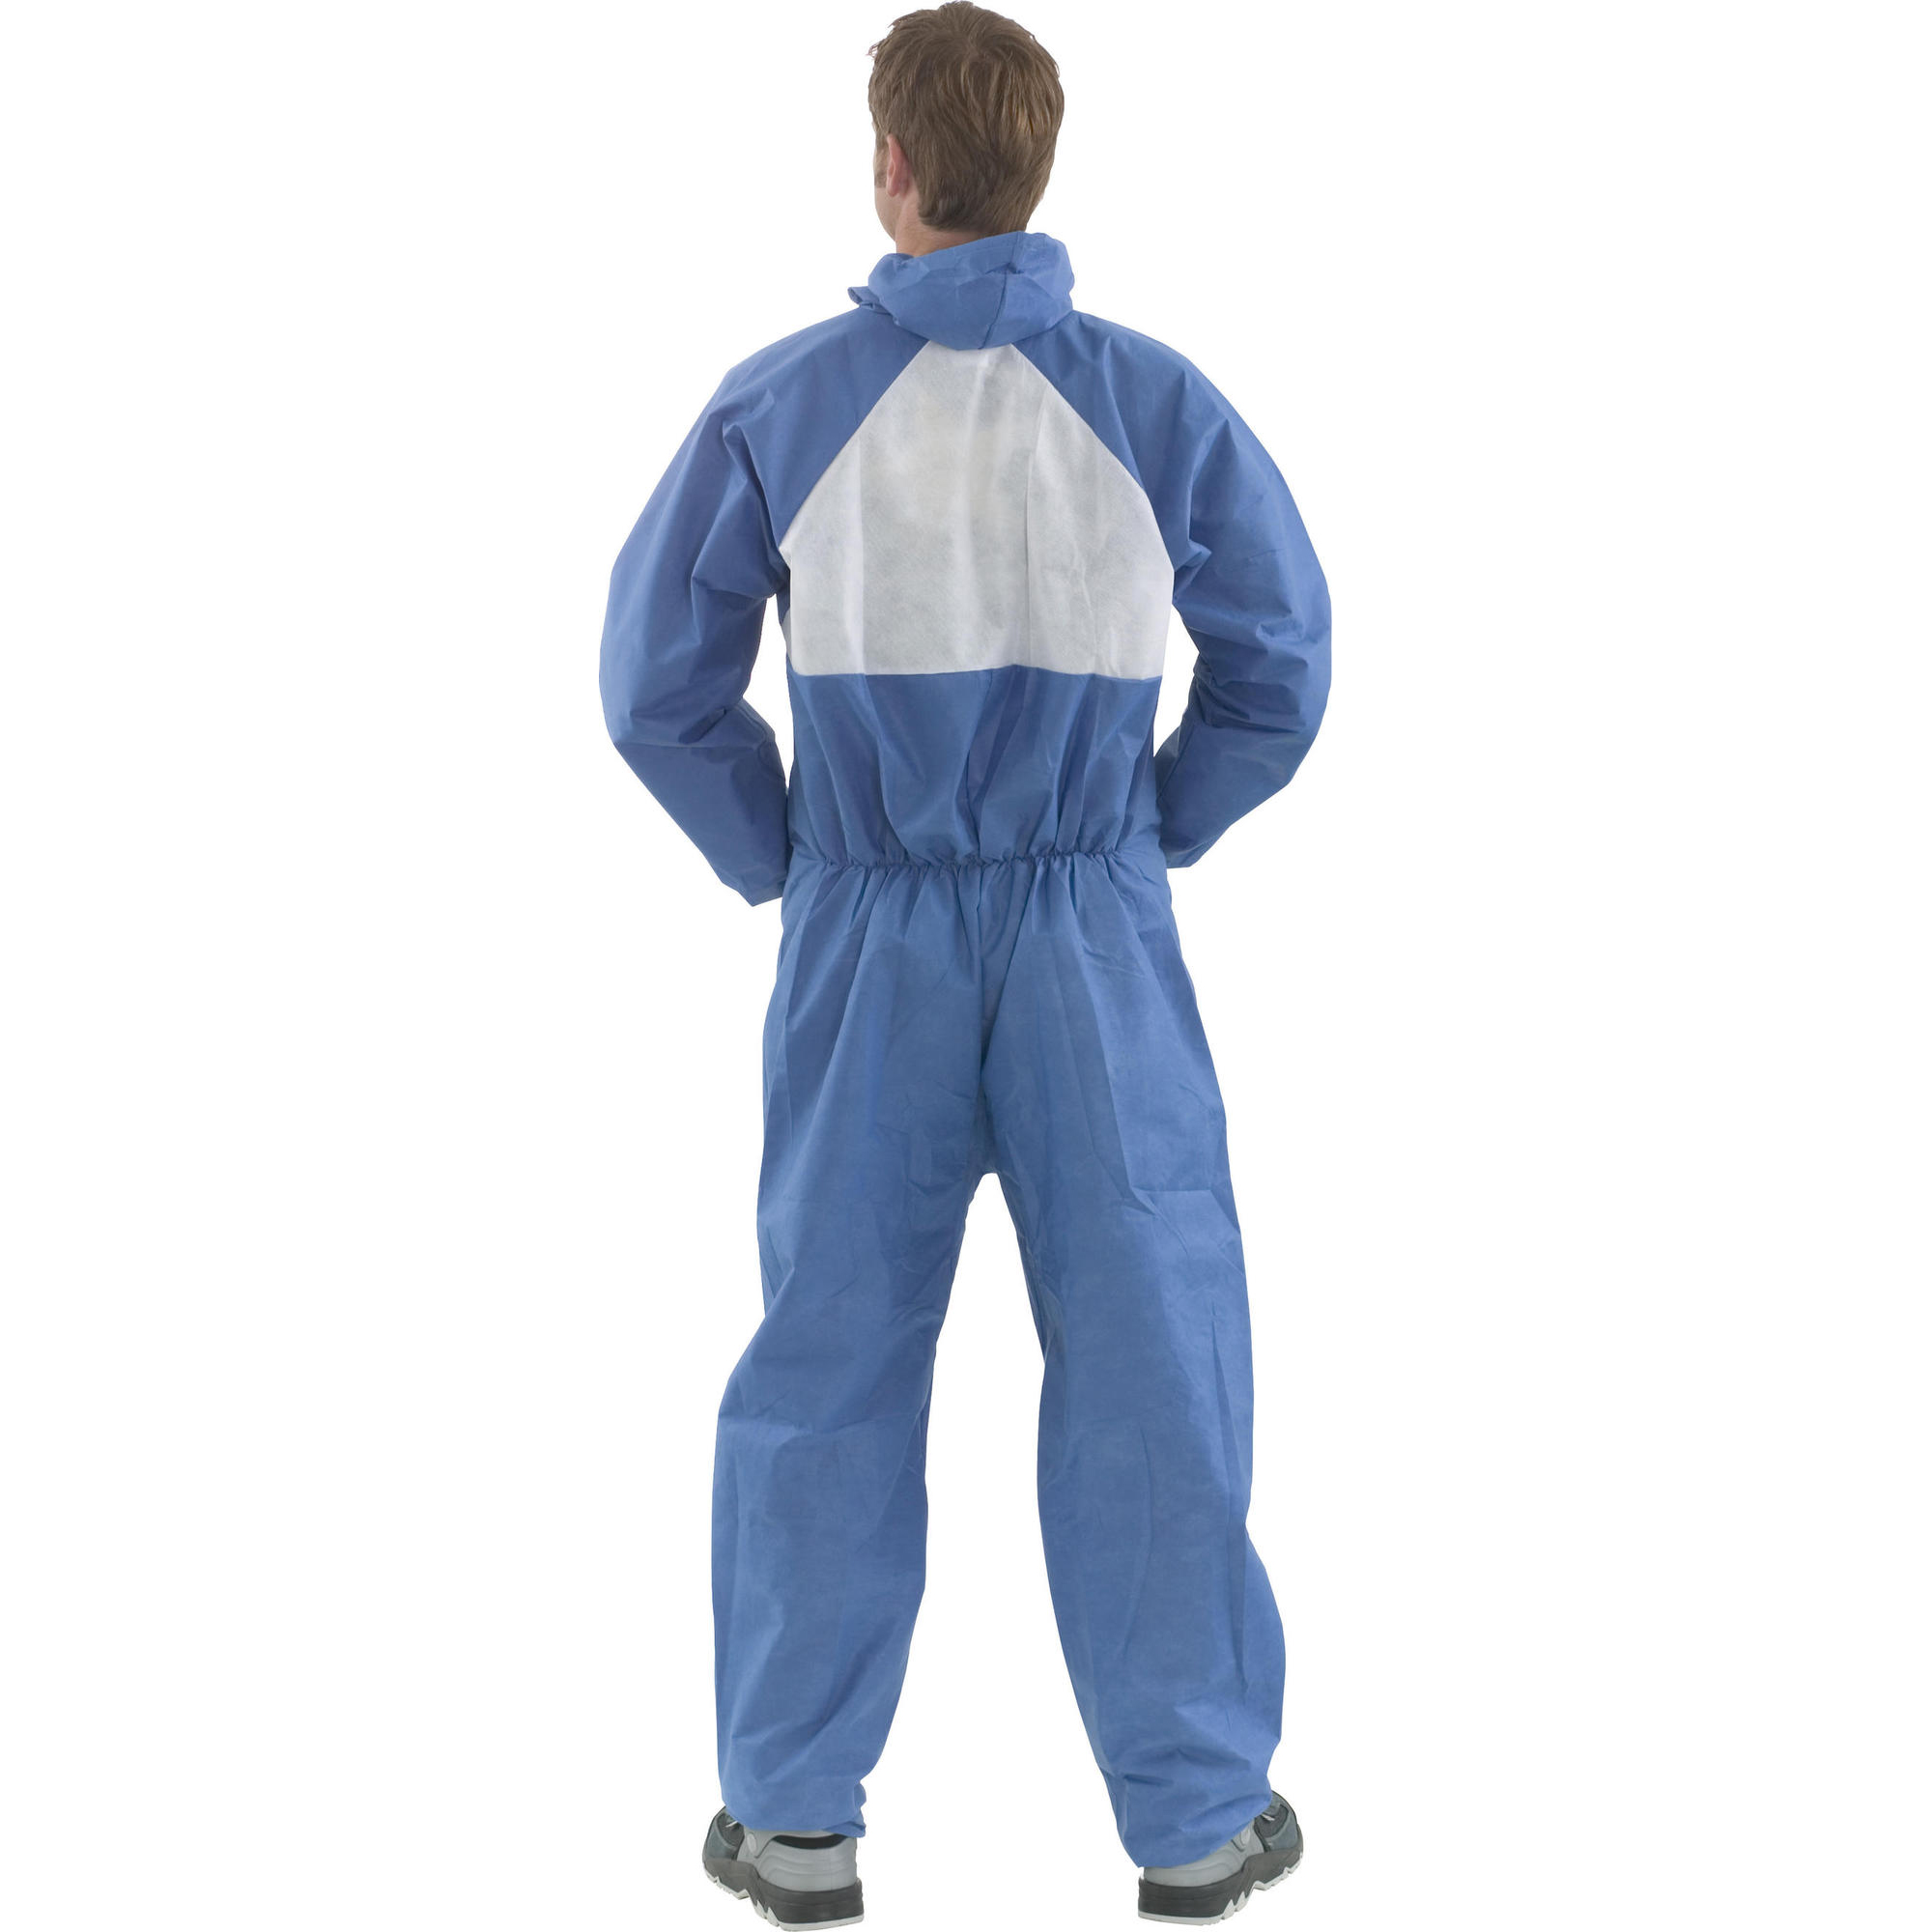 3M 4530 Fire Resistant Coveralls 2XL Blue/White Ref 4530XXL Pack 20 *Up to 3 Day Leadtime*